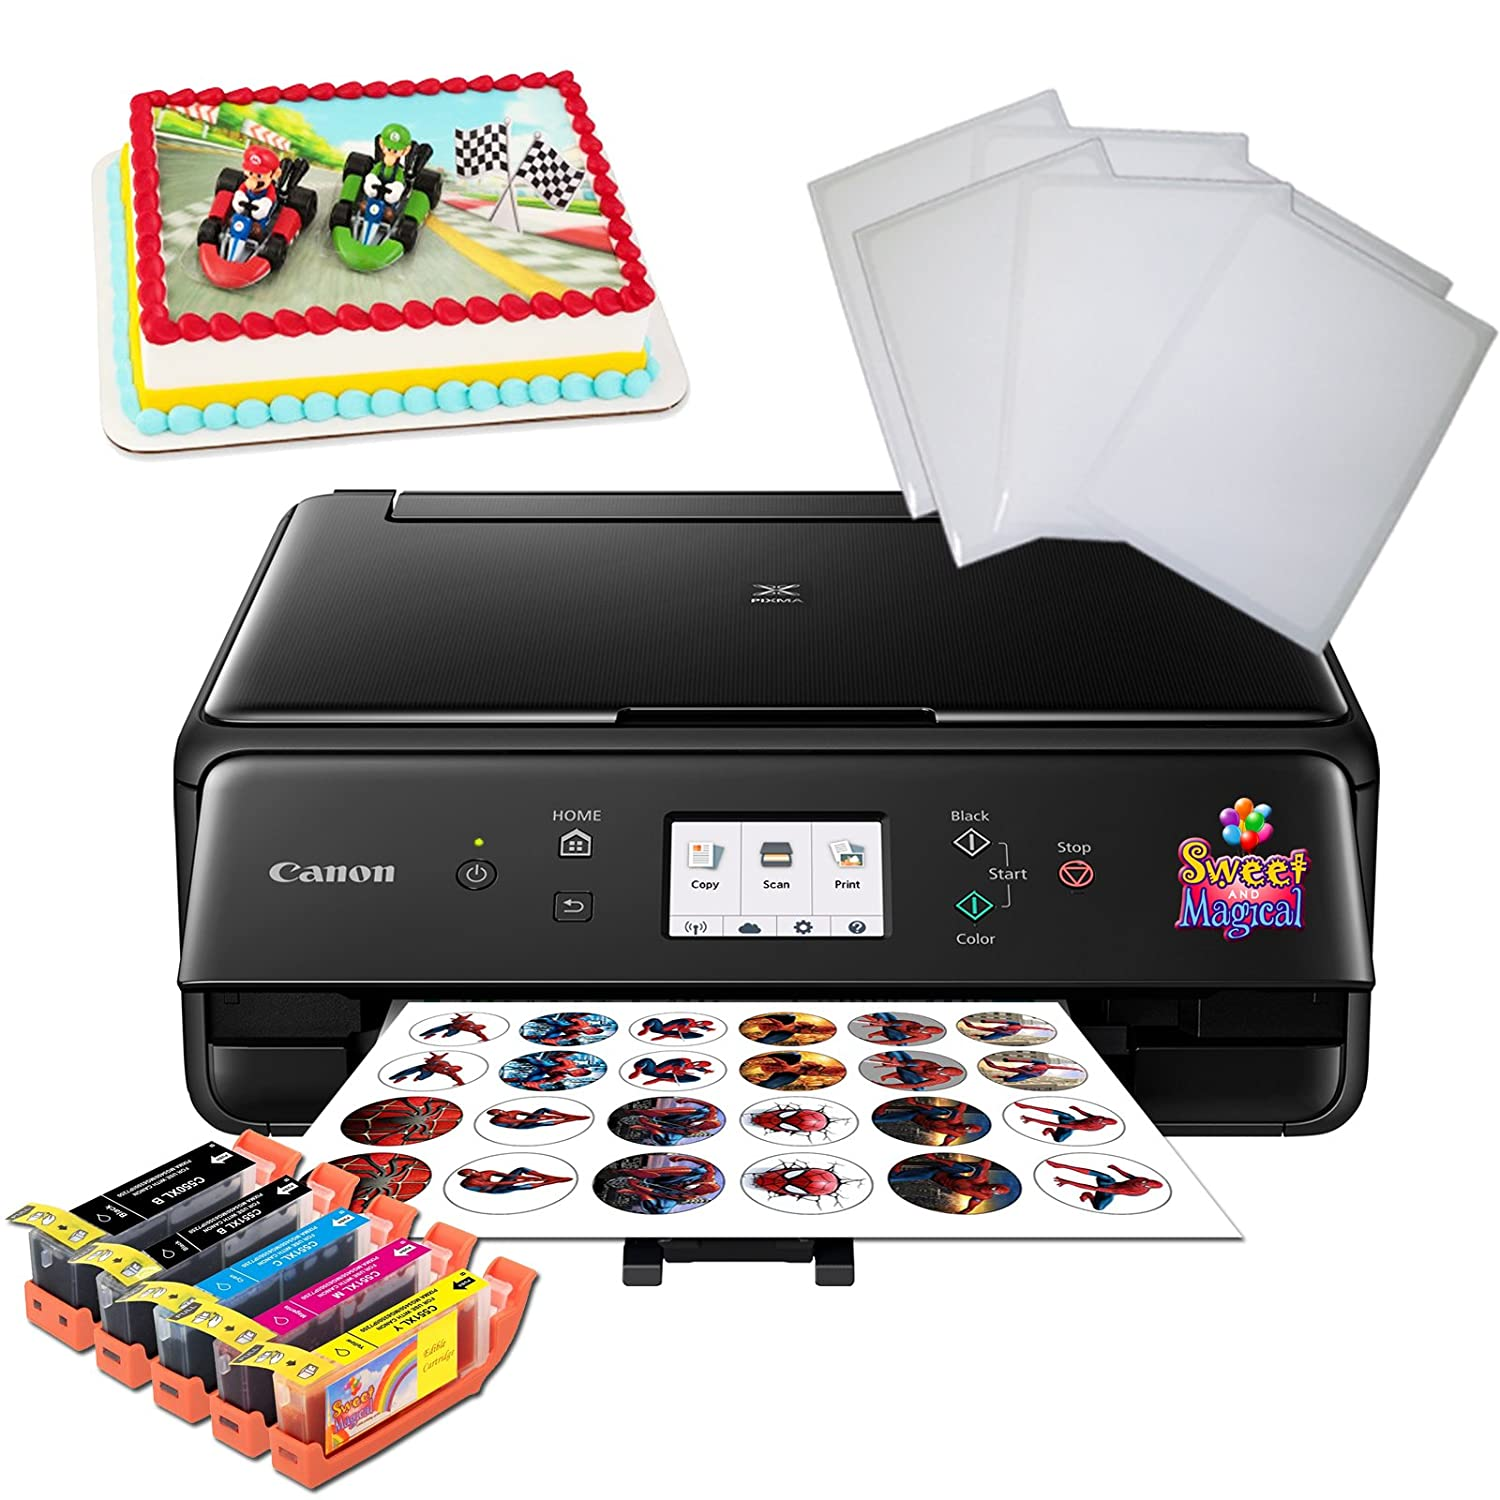 Edible Printer Bundle for Canon - Comes with Edible Ink Cartridges & Frosting Sheets Sweet & Magcal TS5020/6020